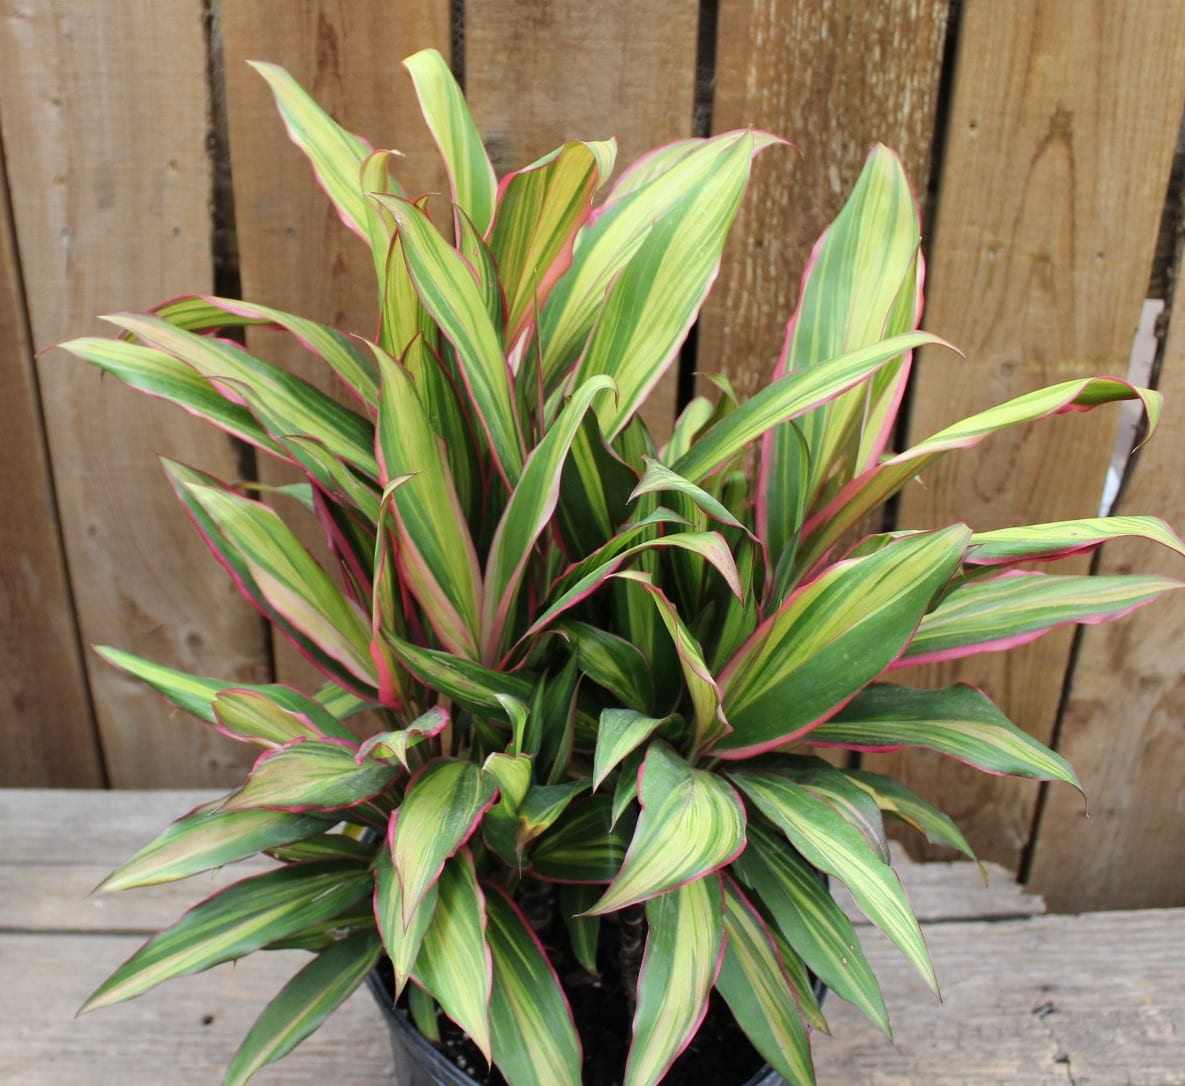 Kiwi Cordyline at City Floral Greenhouse and Garden Center